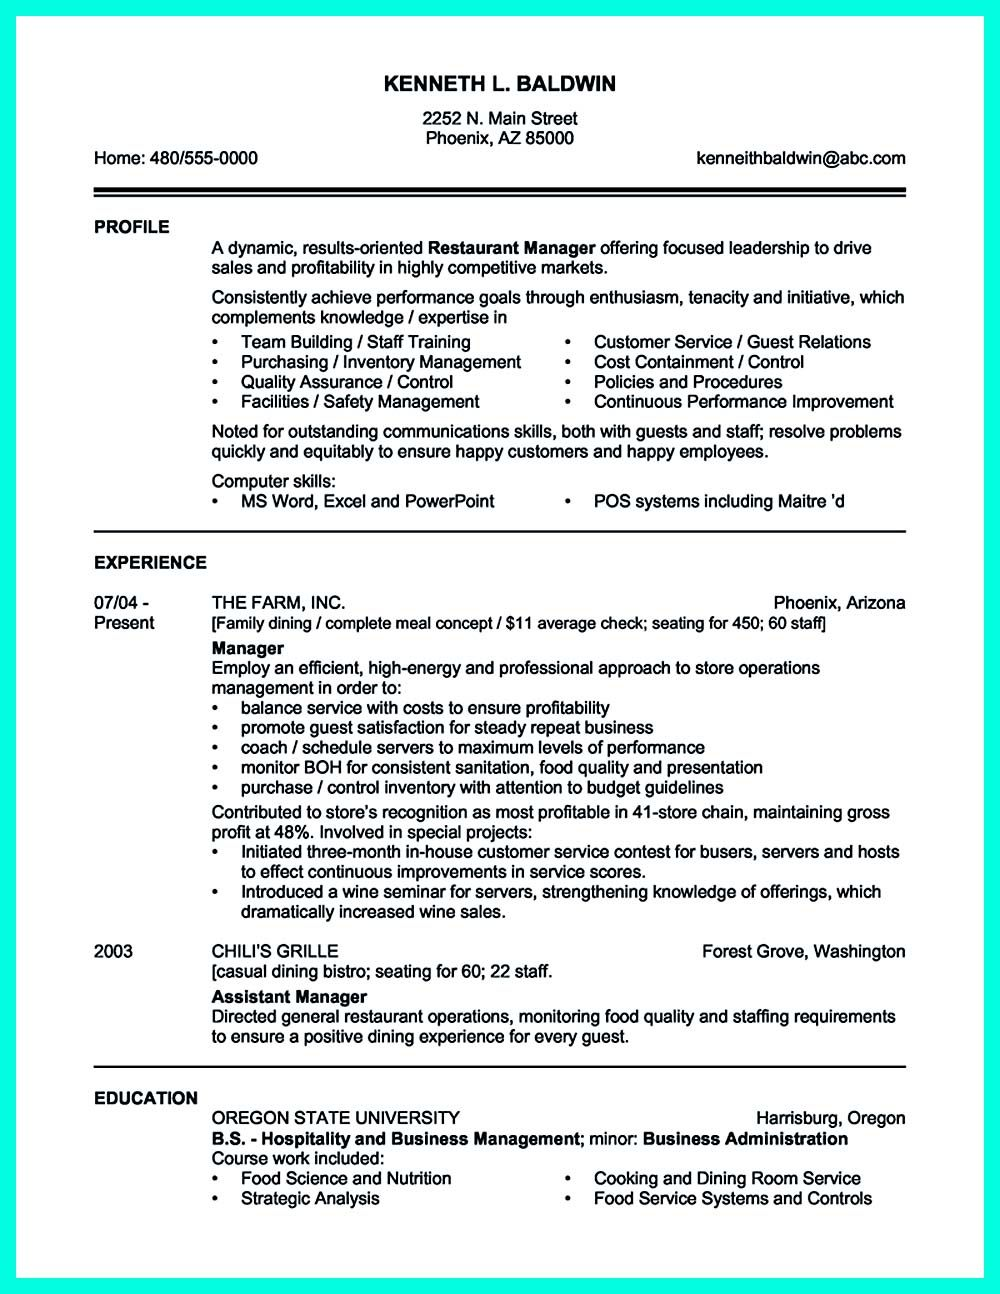 catering resume  resume sample format also catering resume catering manager resumes your catering manager resume mustbe impressive to make impressive catering